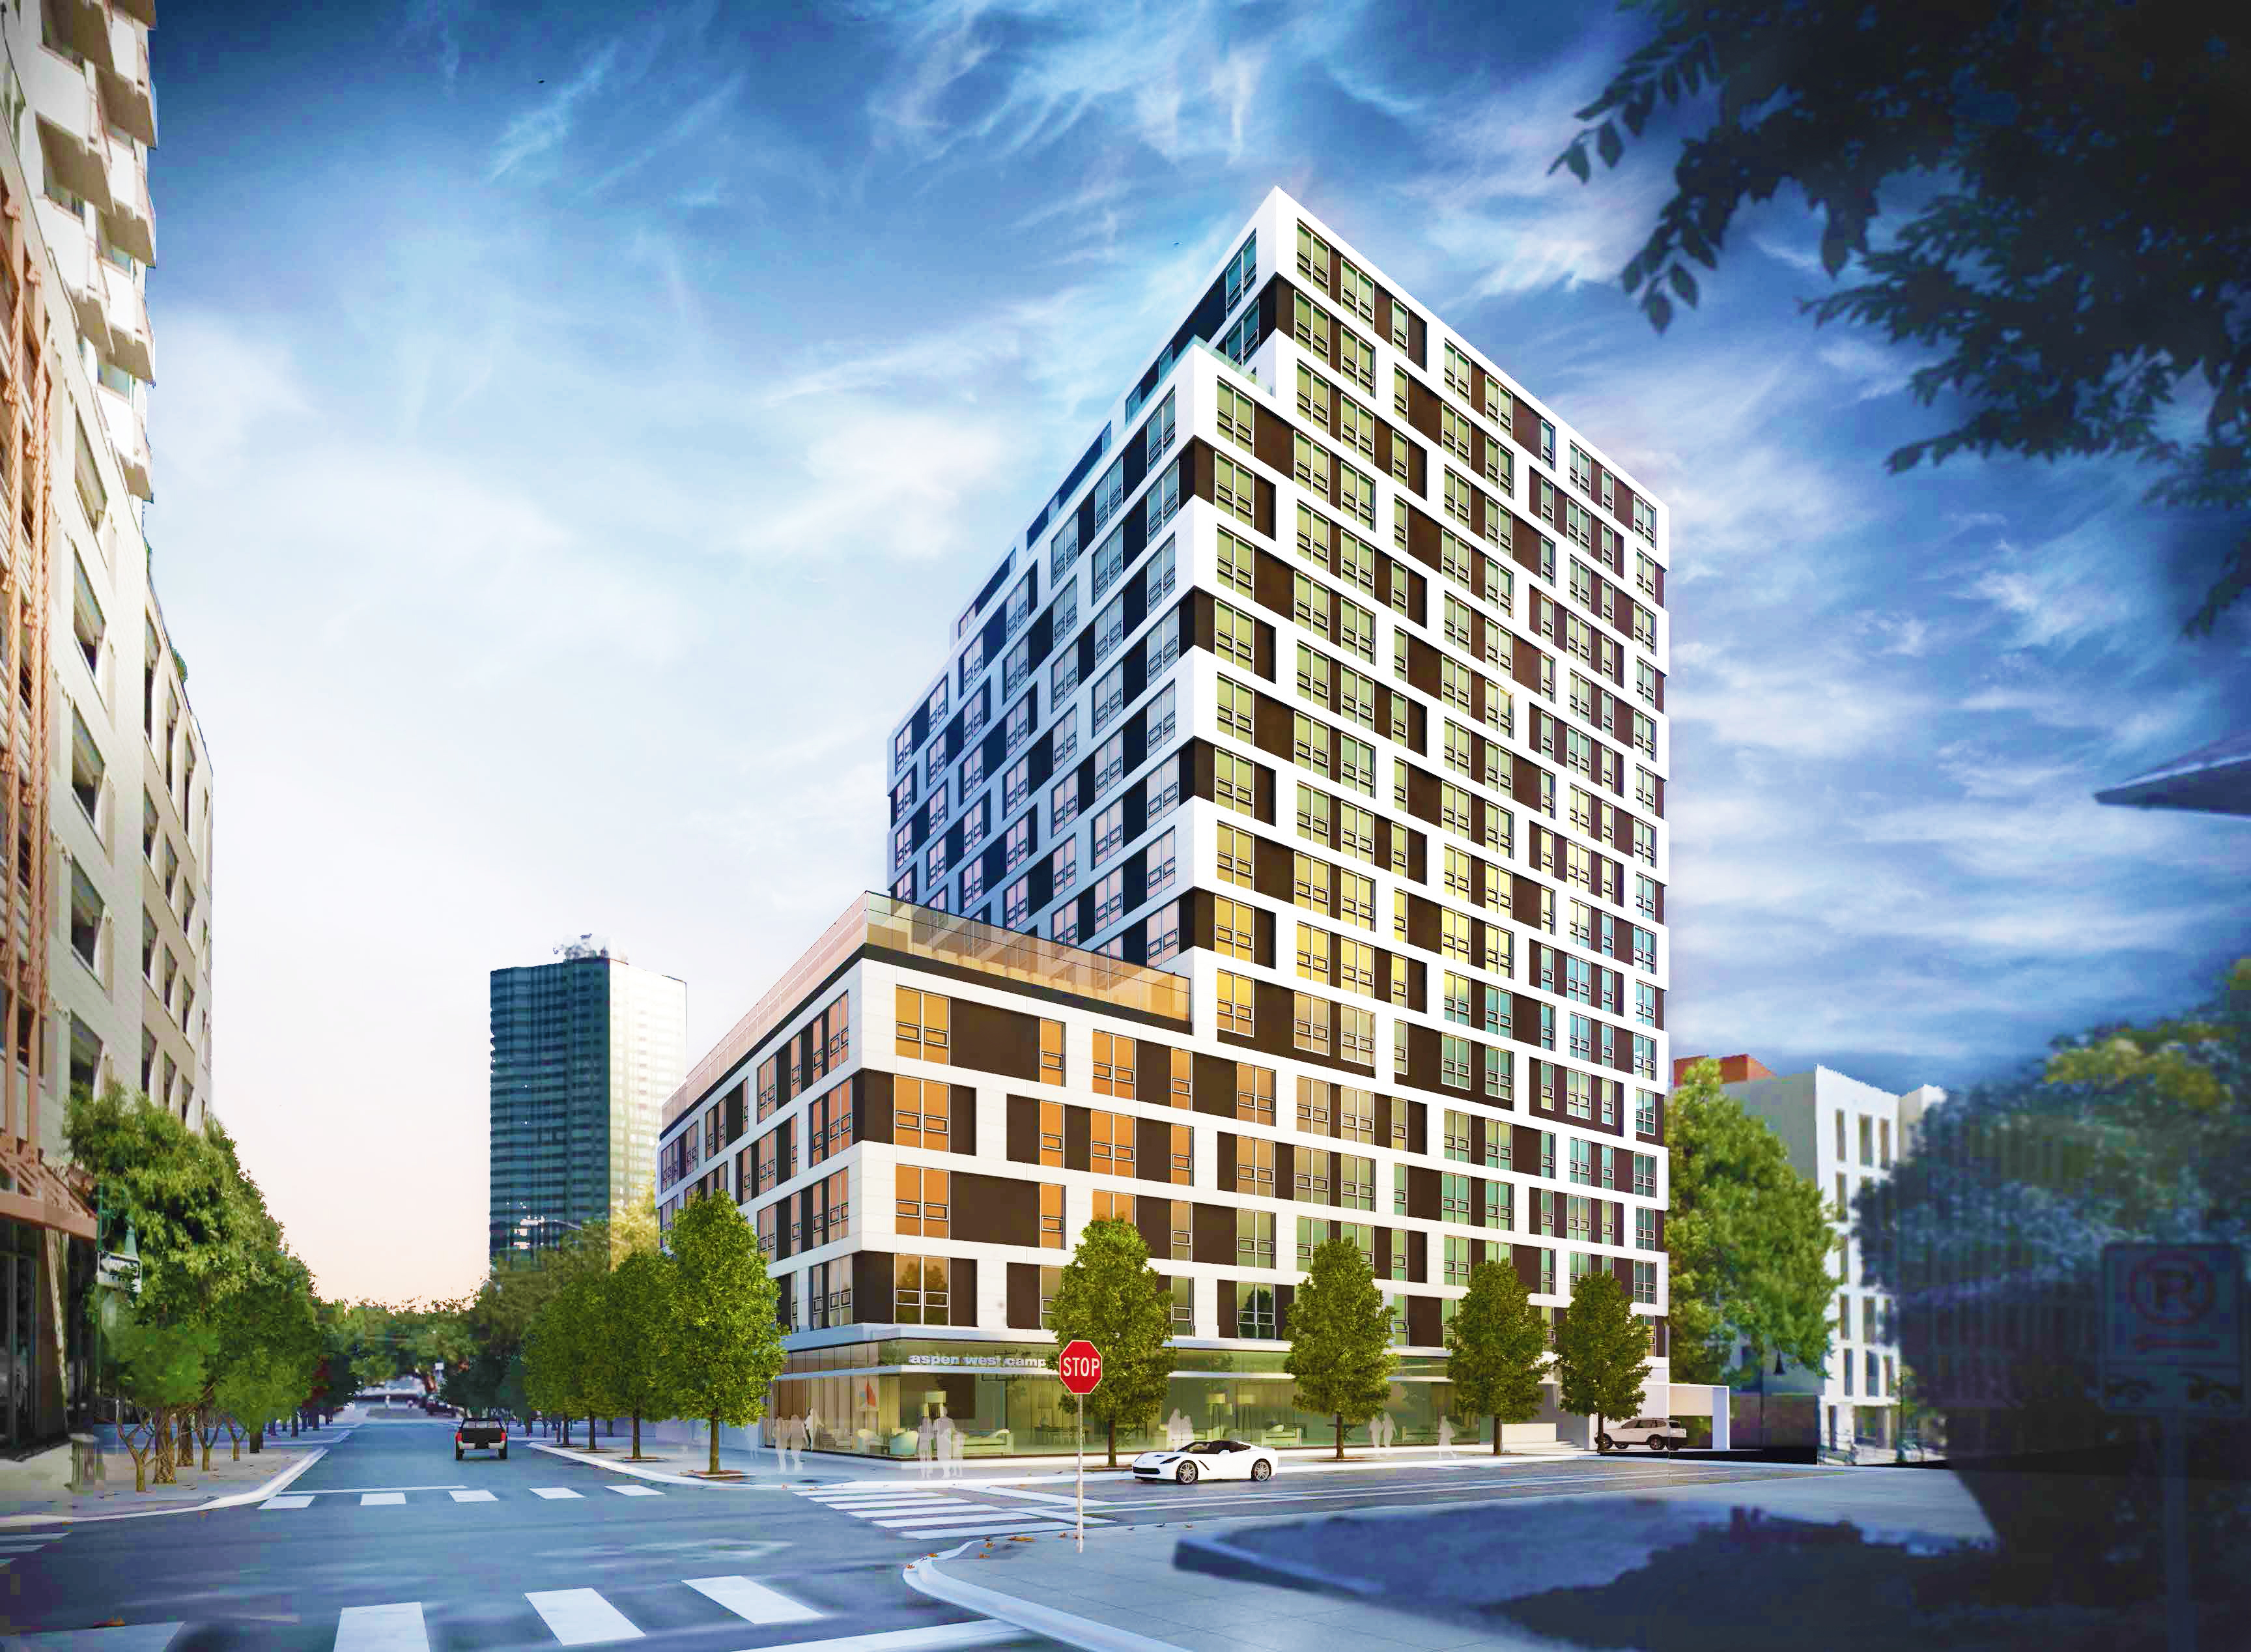 rendering of multi-leveled high-rise